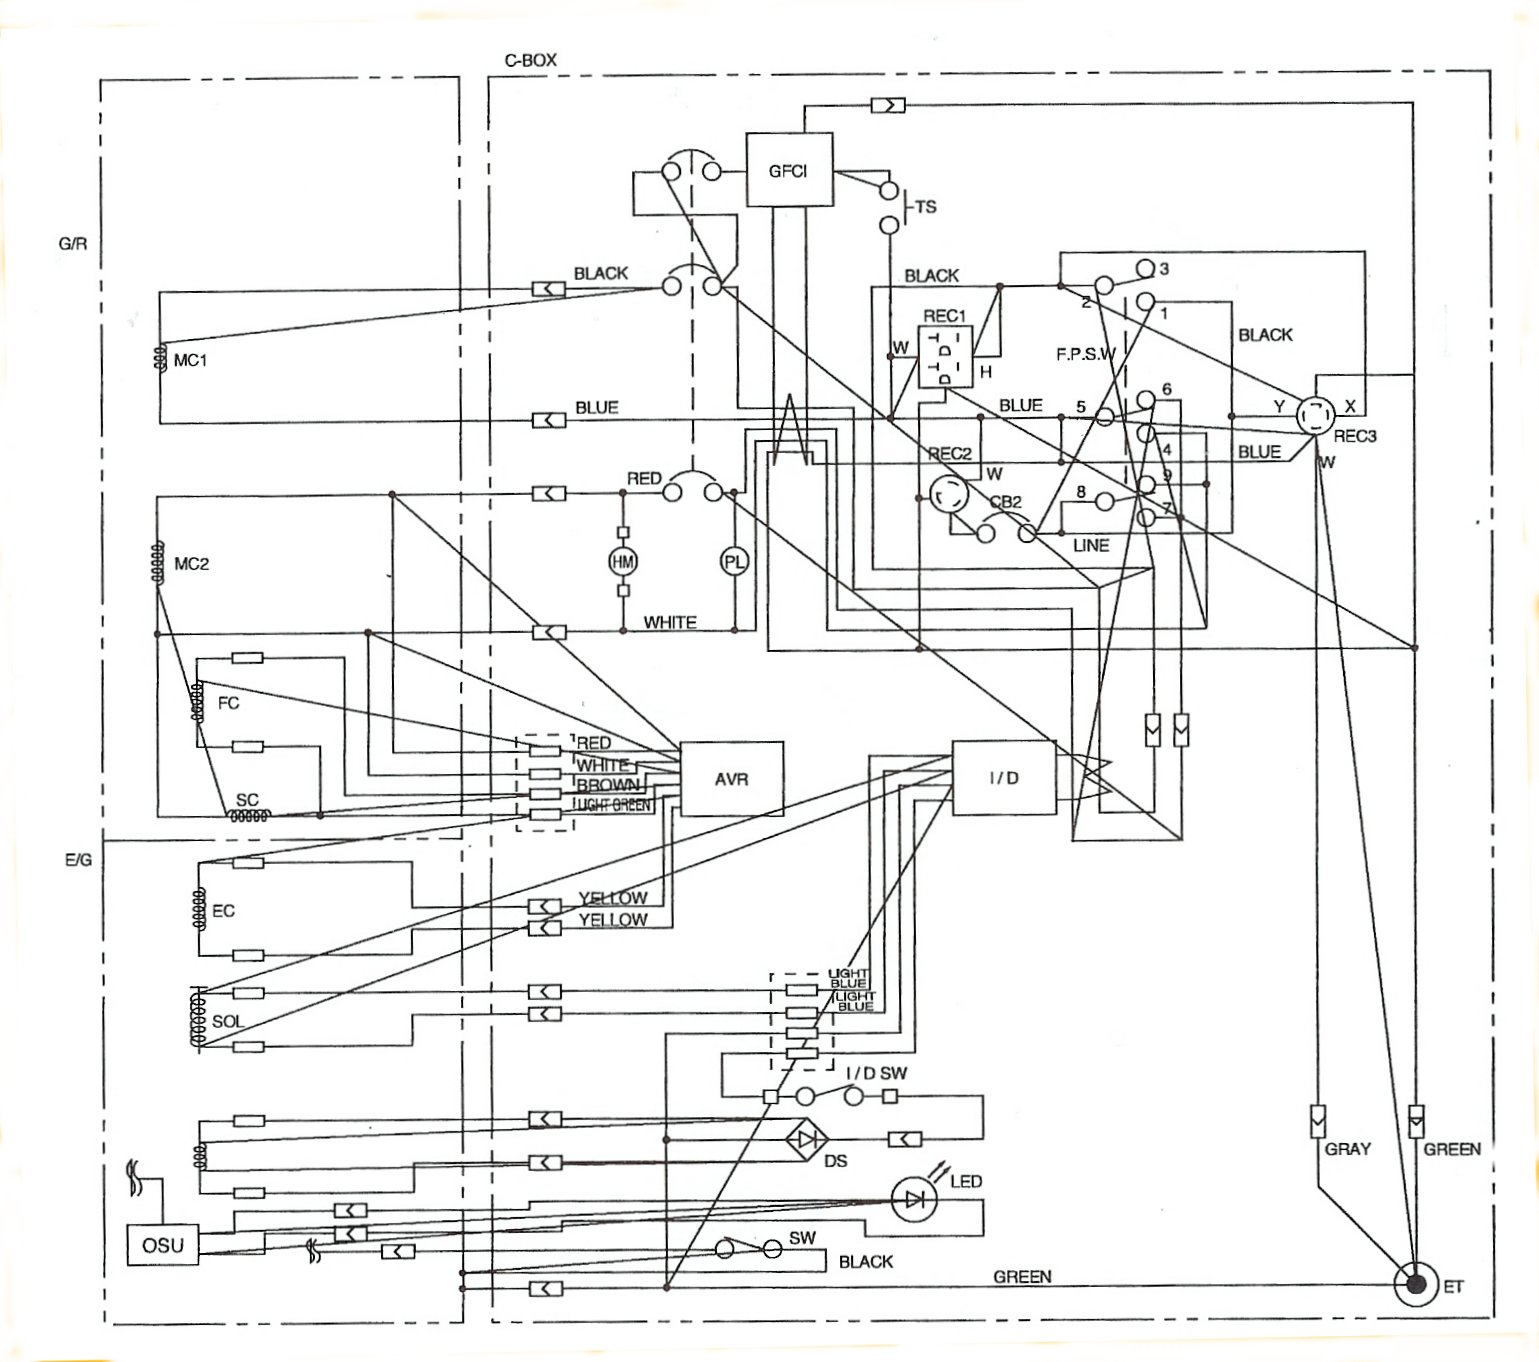 [DVZP_7254]   2000 Itasca Wiring Diagram Diagram Base Website Wiring Diagram -  DIAGRAMOFHEART.MARIORAPISARDI.IT | 2000 Itasca Wiring Diagram |  | Diagram Base Website Full Edition - mariorapisardi.it